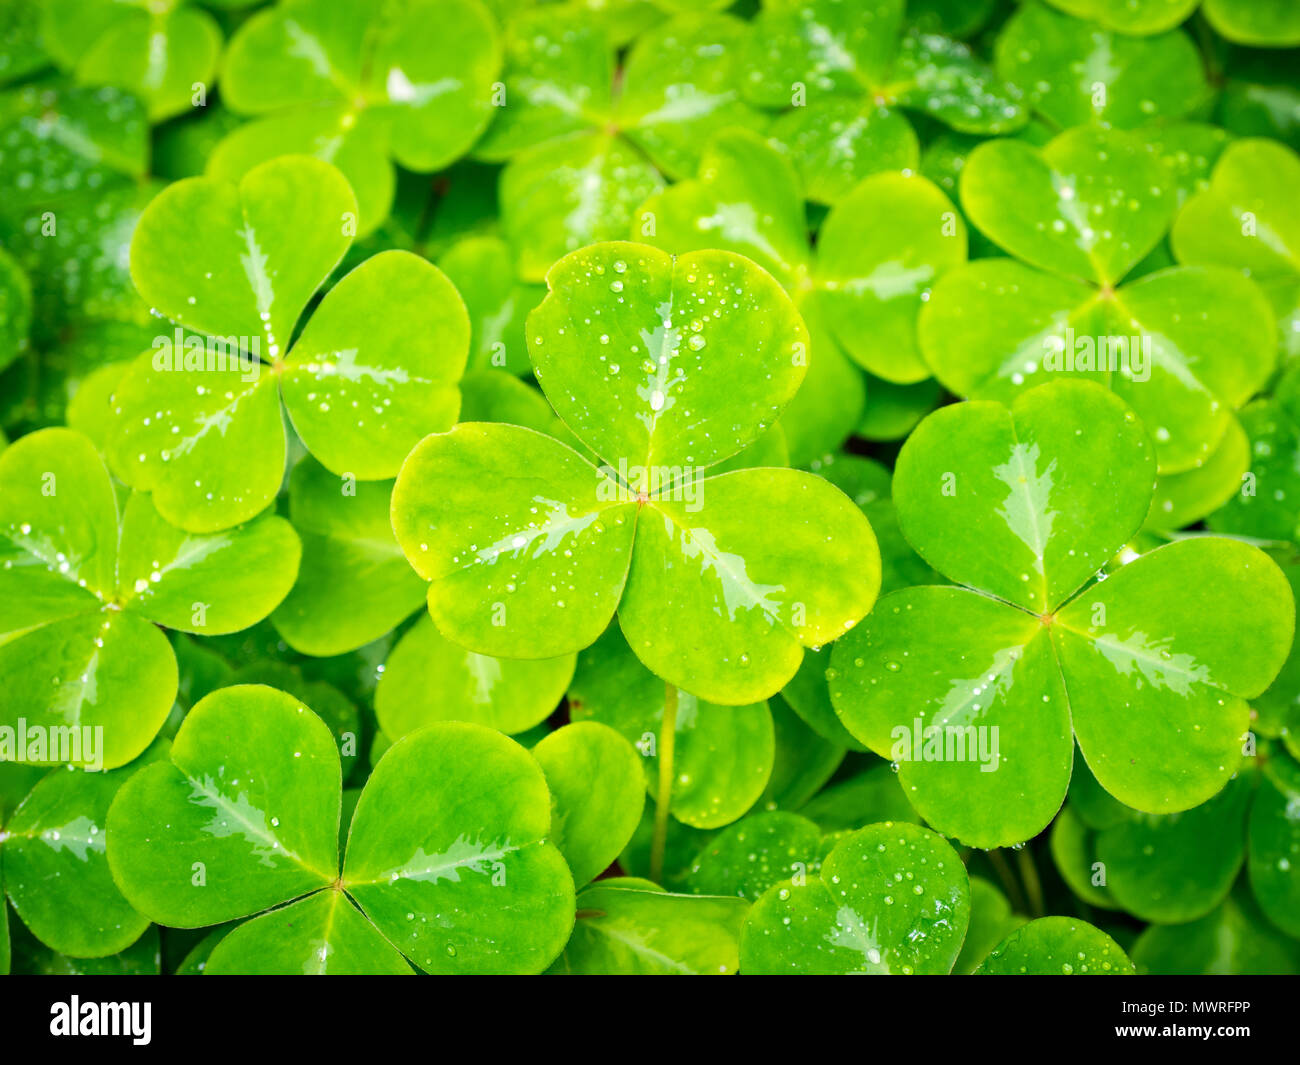 Oxalis oregana (redwood sorrel, Oregon oxalis, shamrock) at the Butchart Gardens in Brentwood Bay, British Columbia, Canada. - Stock Image